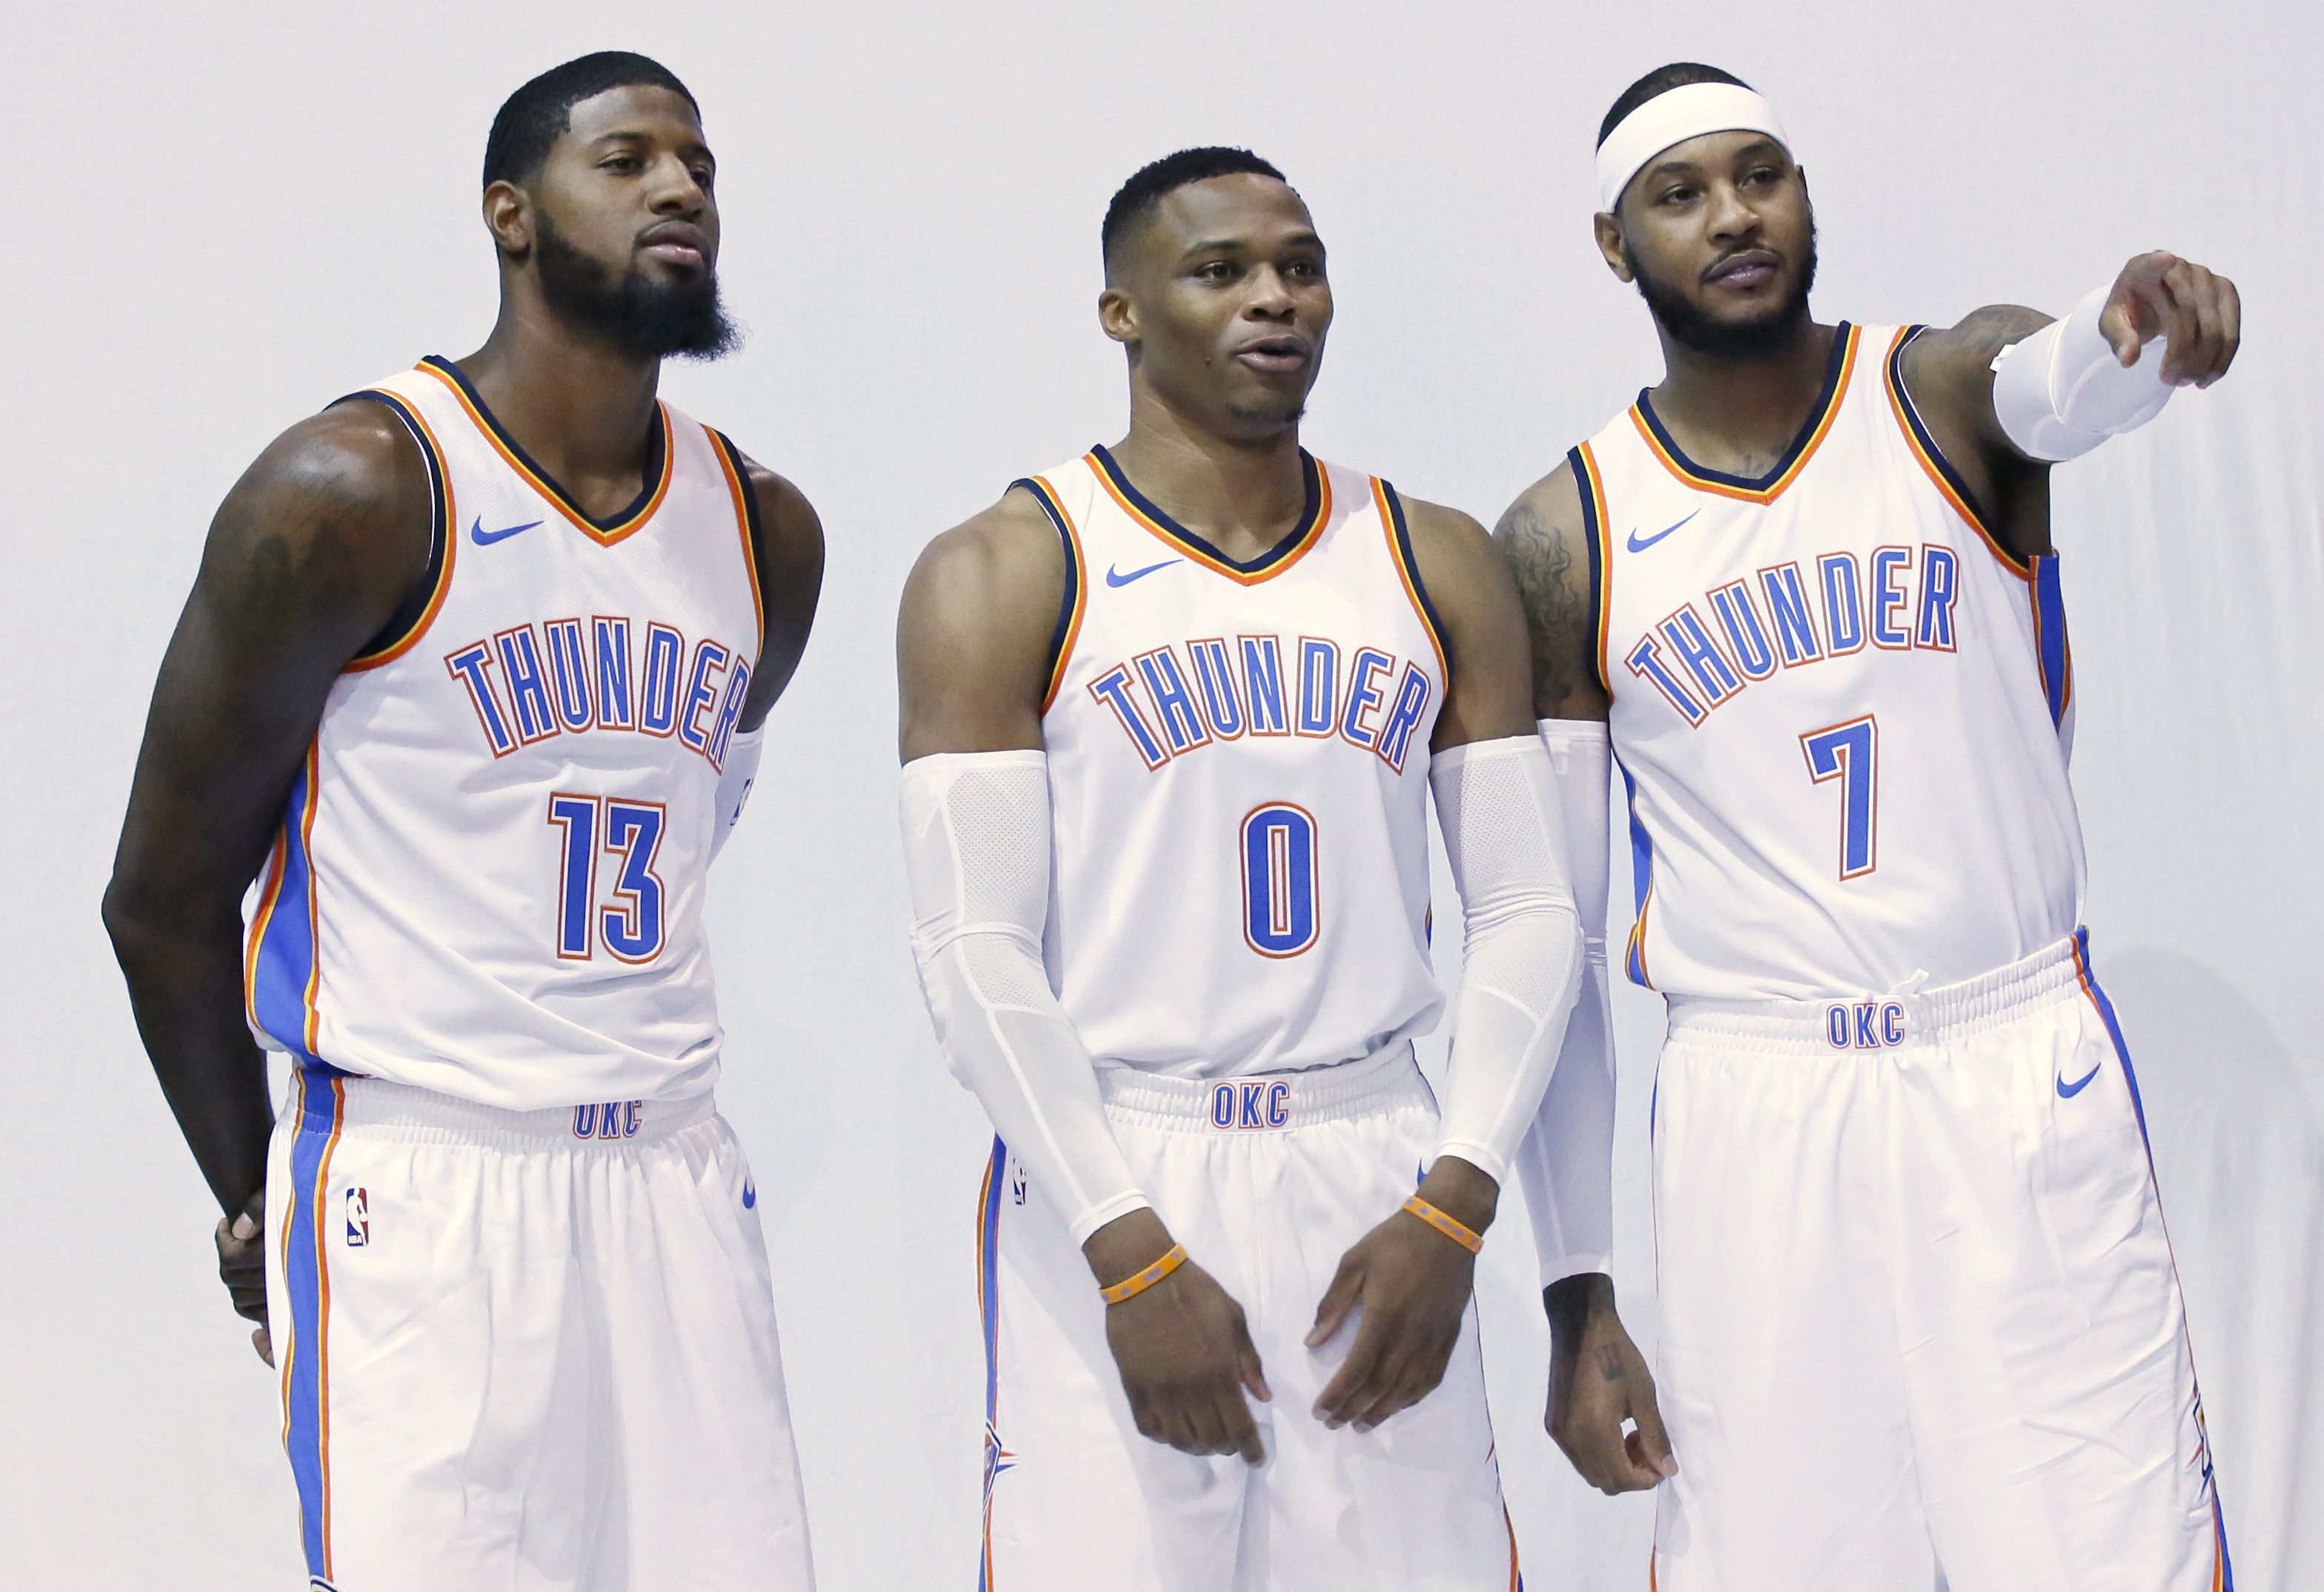 Oklahoma City Thunder´s Paul George (13), Russell Westbrook (0) and Carmelo Anthony (7) pose for photos during an NBA basketball media day in Oklahoma City, Monday, Sept. 25, 2017. (AP Photo/Sue Ogrocki)